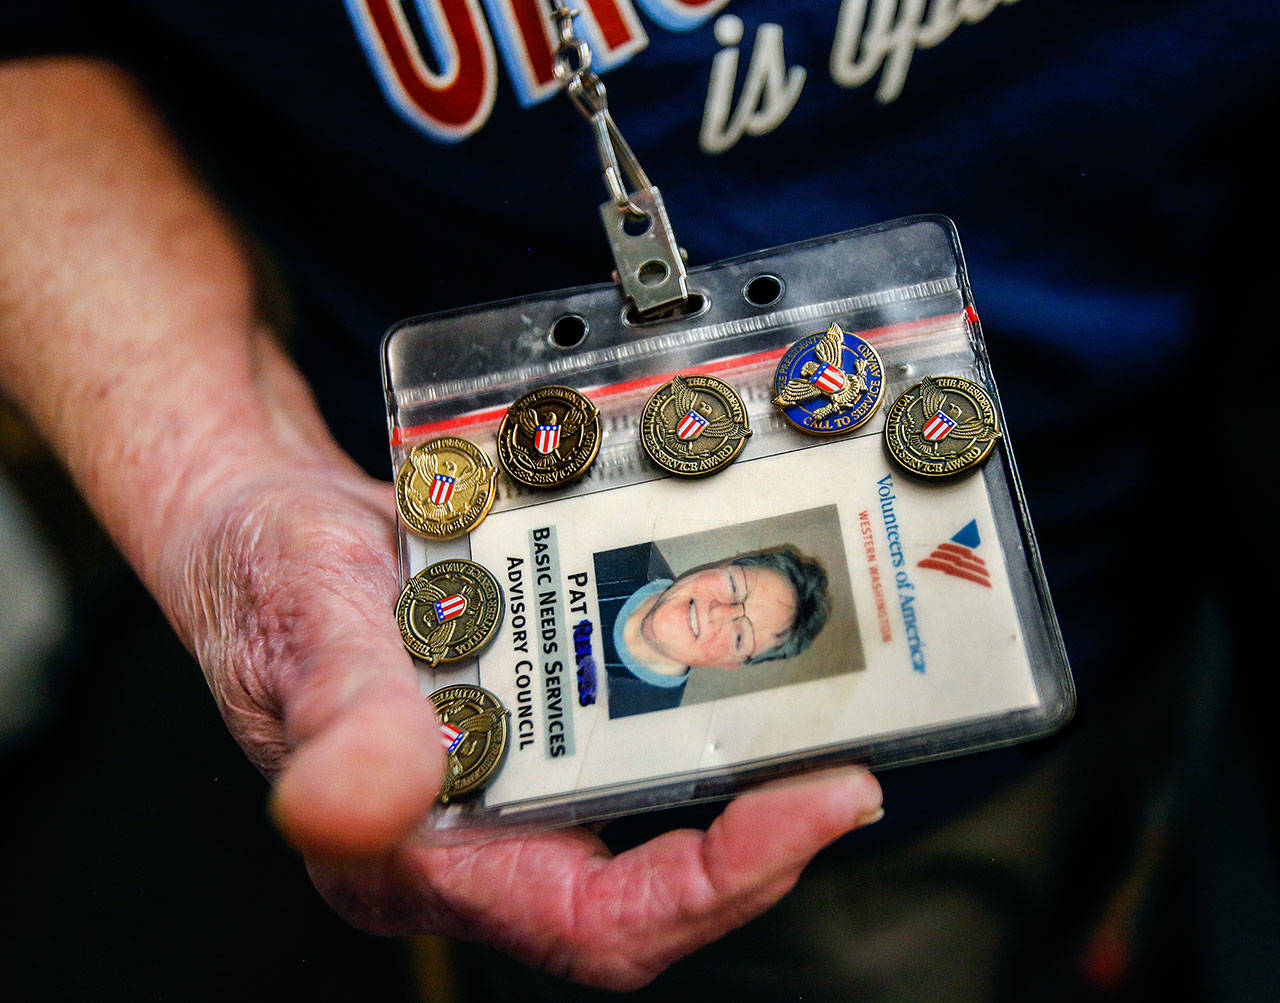 Volunteer Pat Reeve, 78, has seven pins on her VOA identification card for helping many hours. (Dan Bates / The Herald)